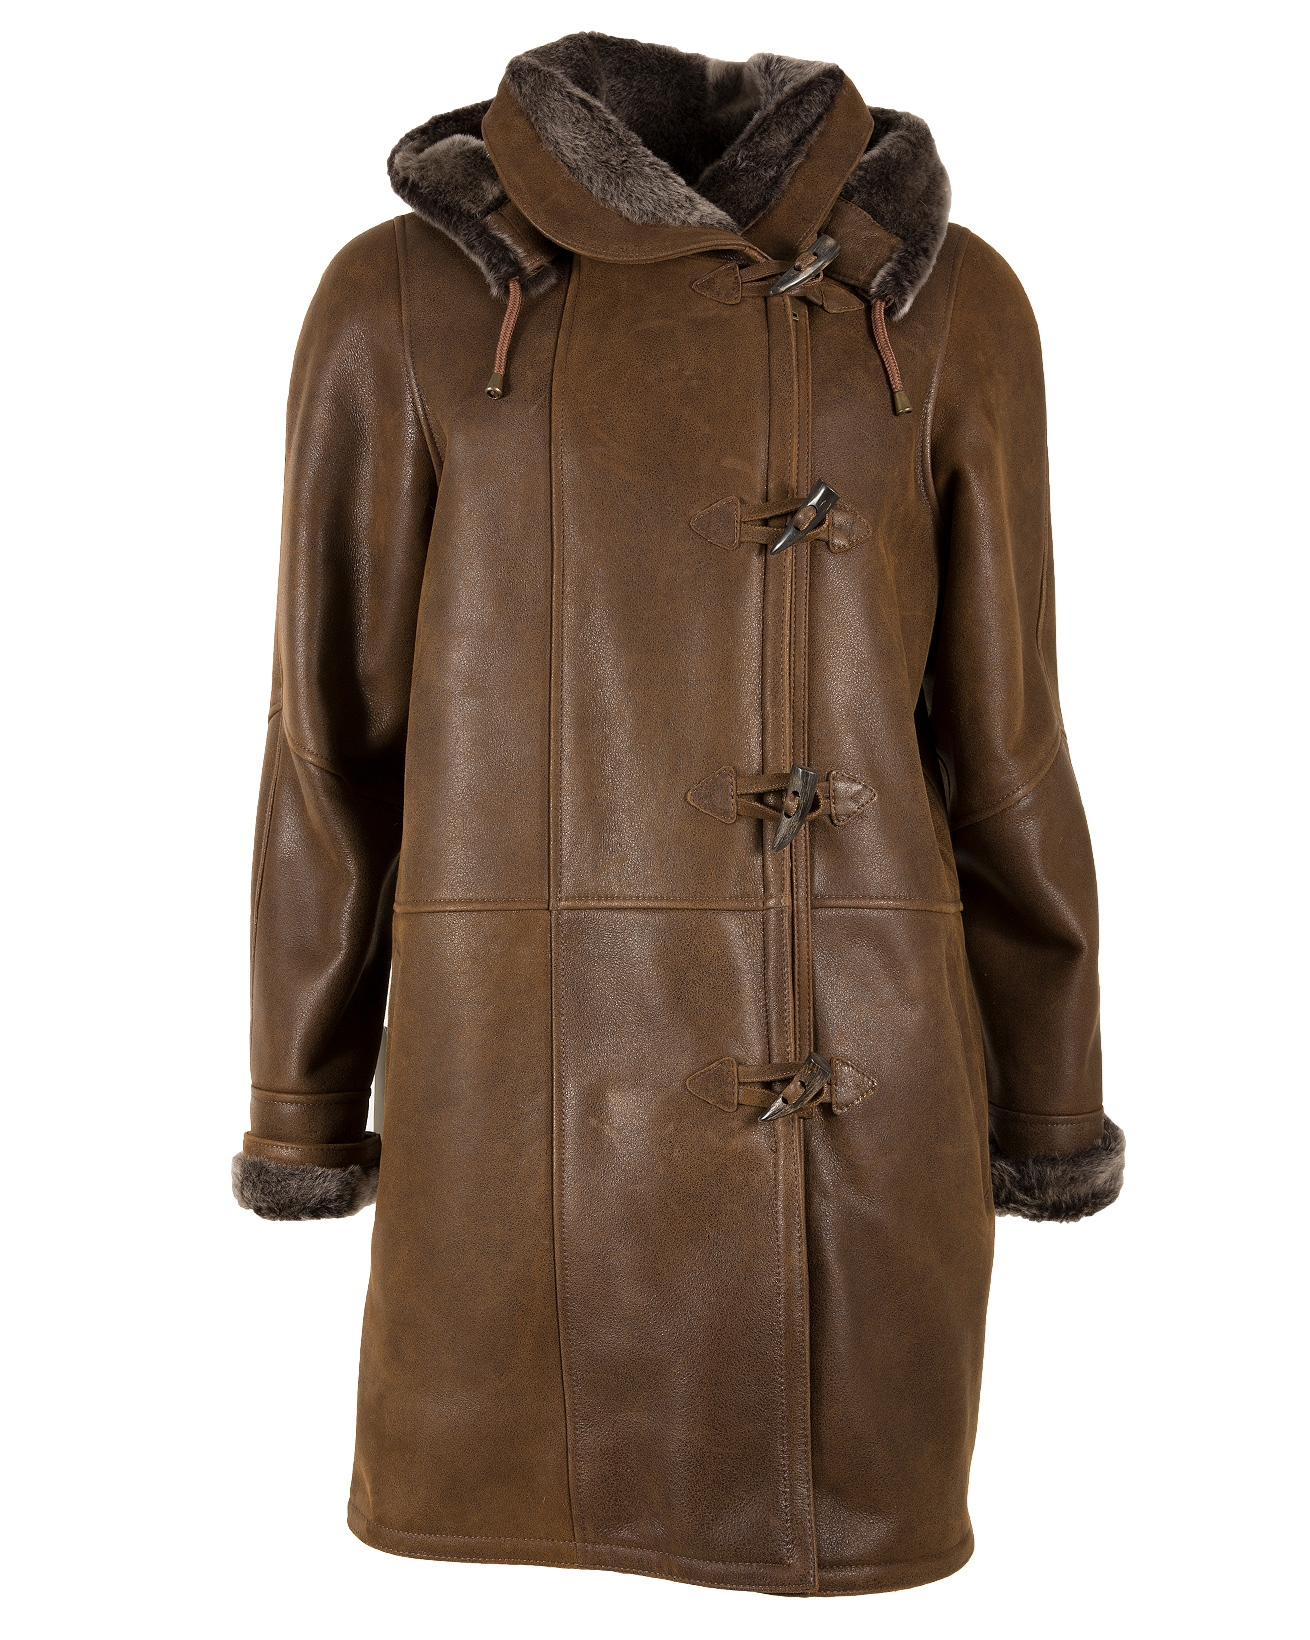 6026-duffle coat-honey brown-front-aw18.jpg